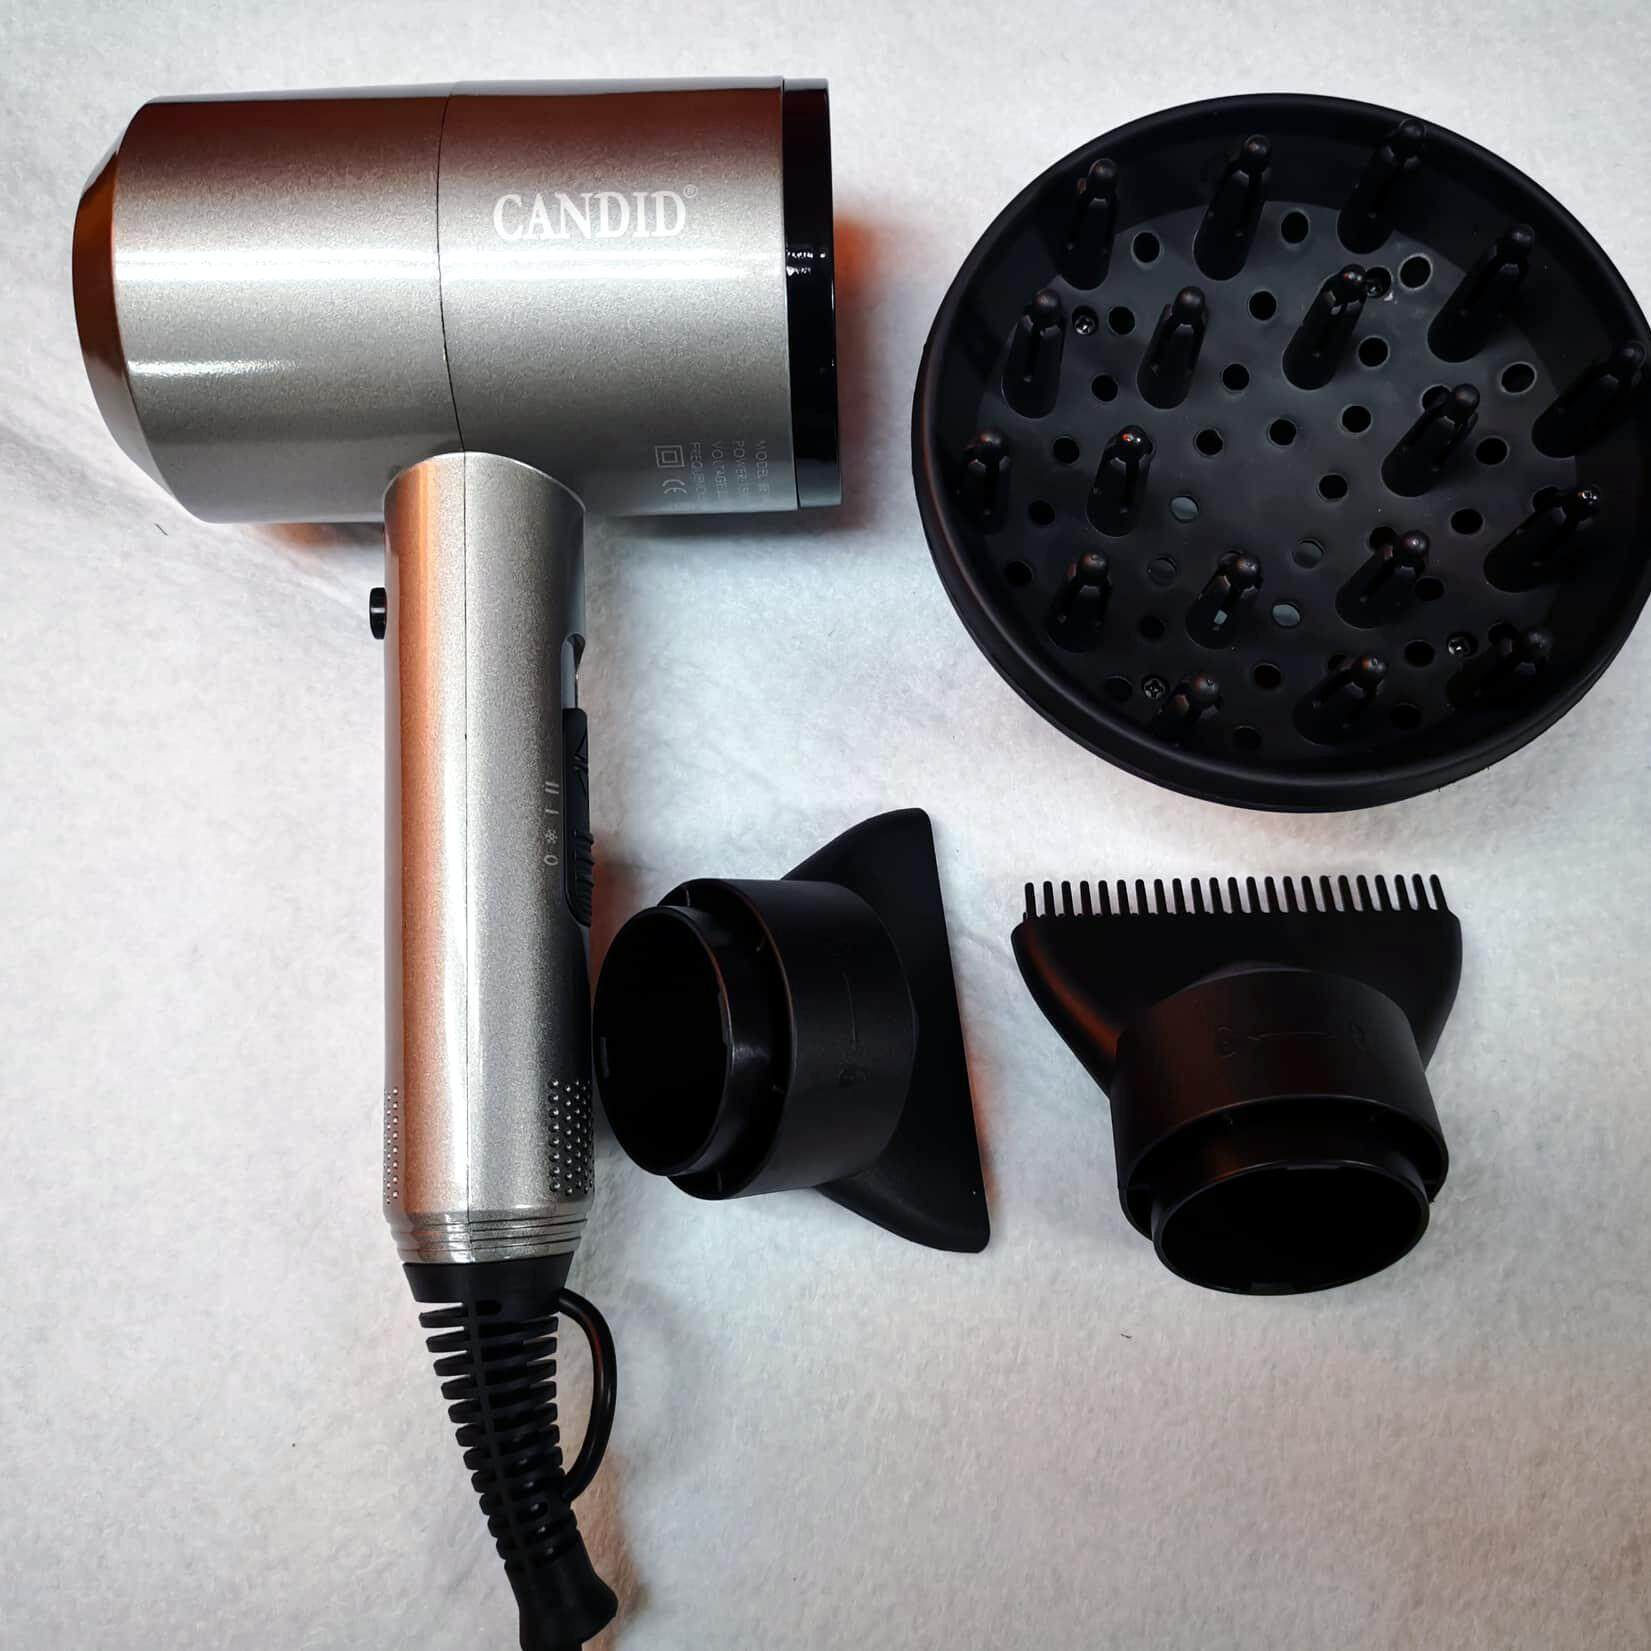 CANDID C9 Ionic Professional Hair dryer